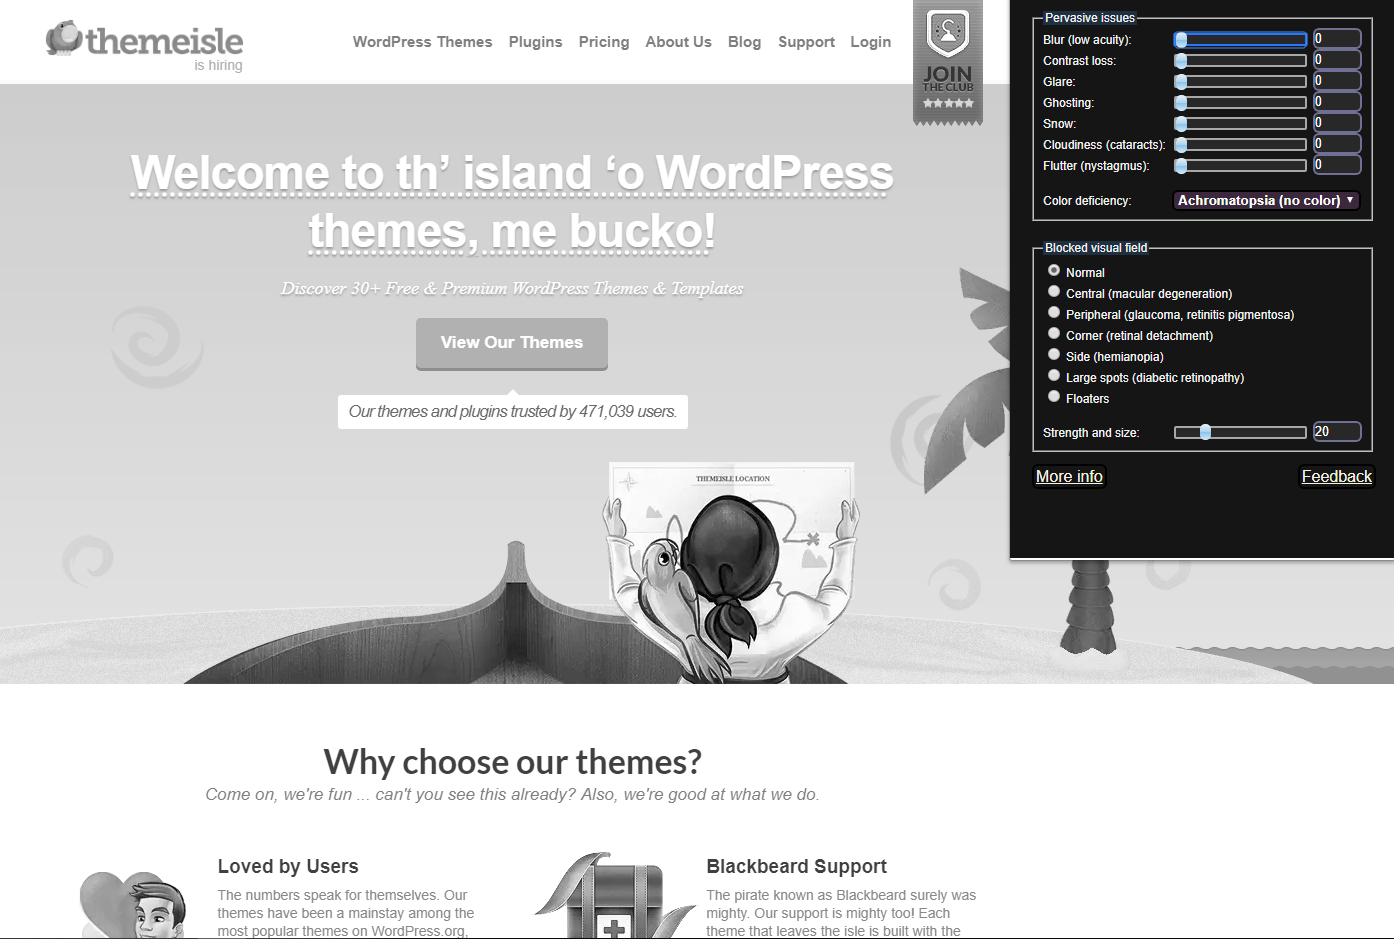 Our site in gray scale when using an accessibility testing tool for vision problems